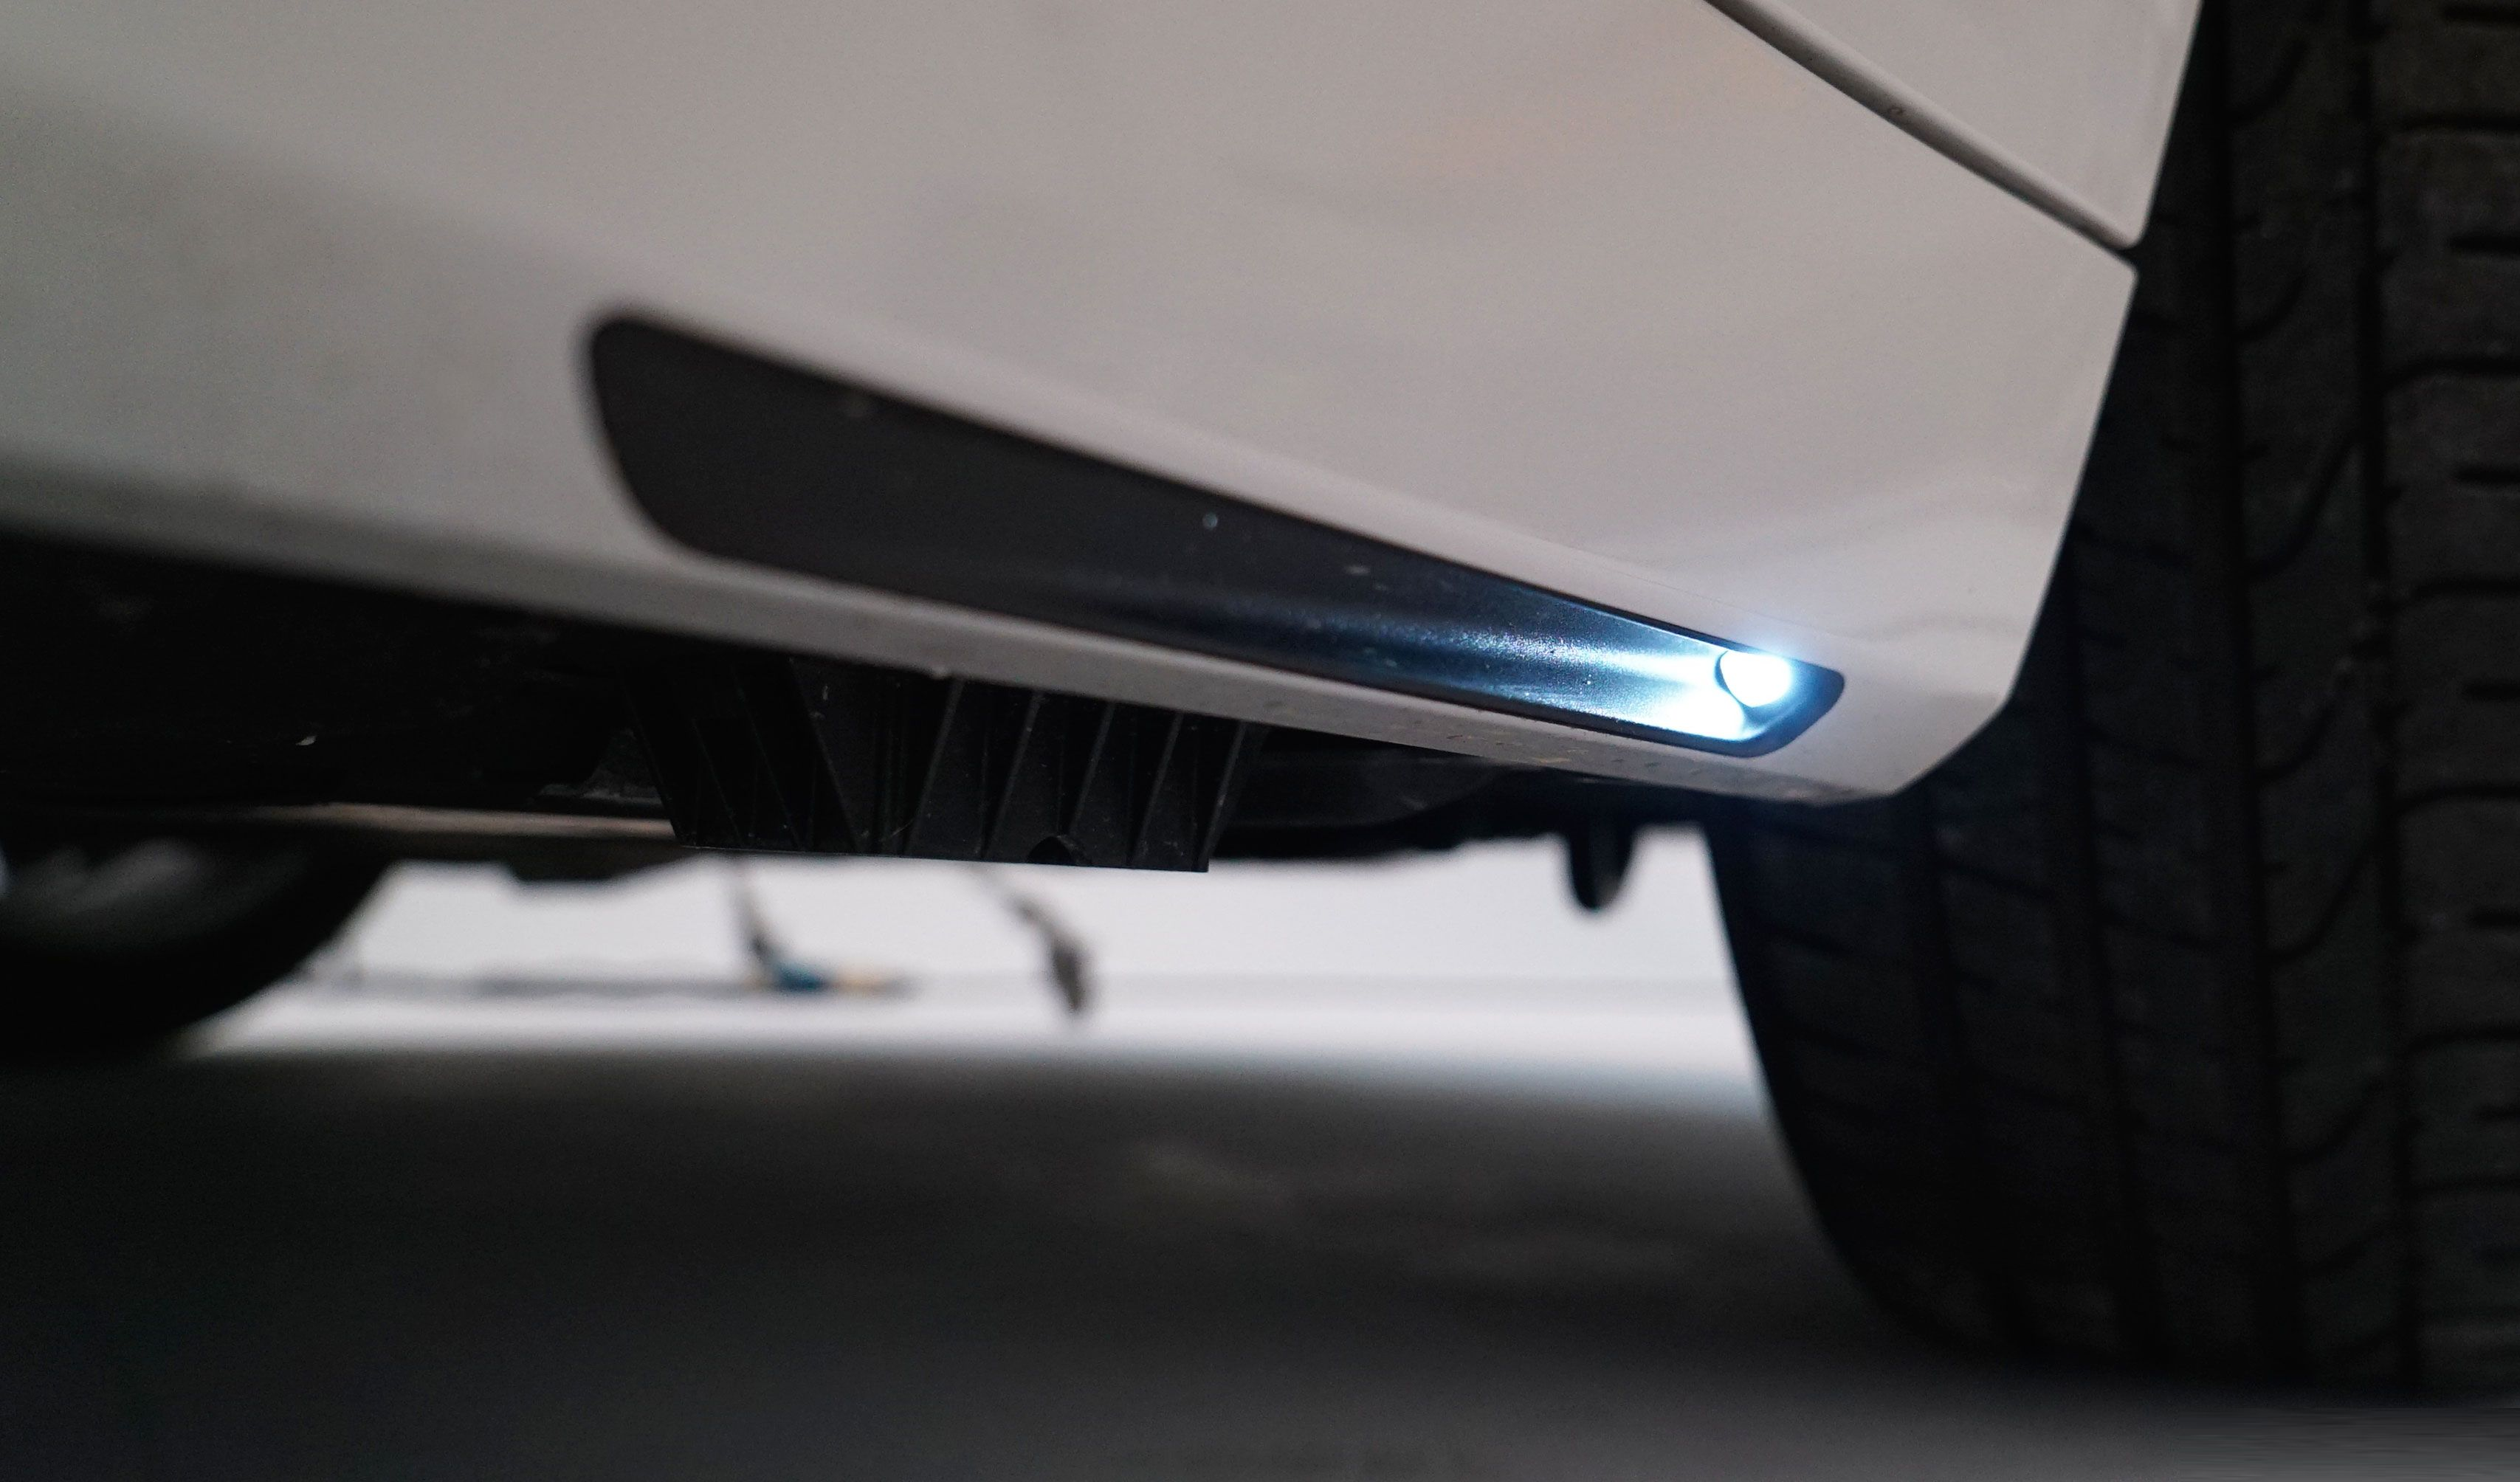 Bmw 7 Series 2016 Welcome Light Carpet It Took 3 Years To Get This Into Production C Www Bmwgroup Com Bmw 7se Bmw Bmw 7 Series Exterior Lighting